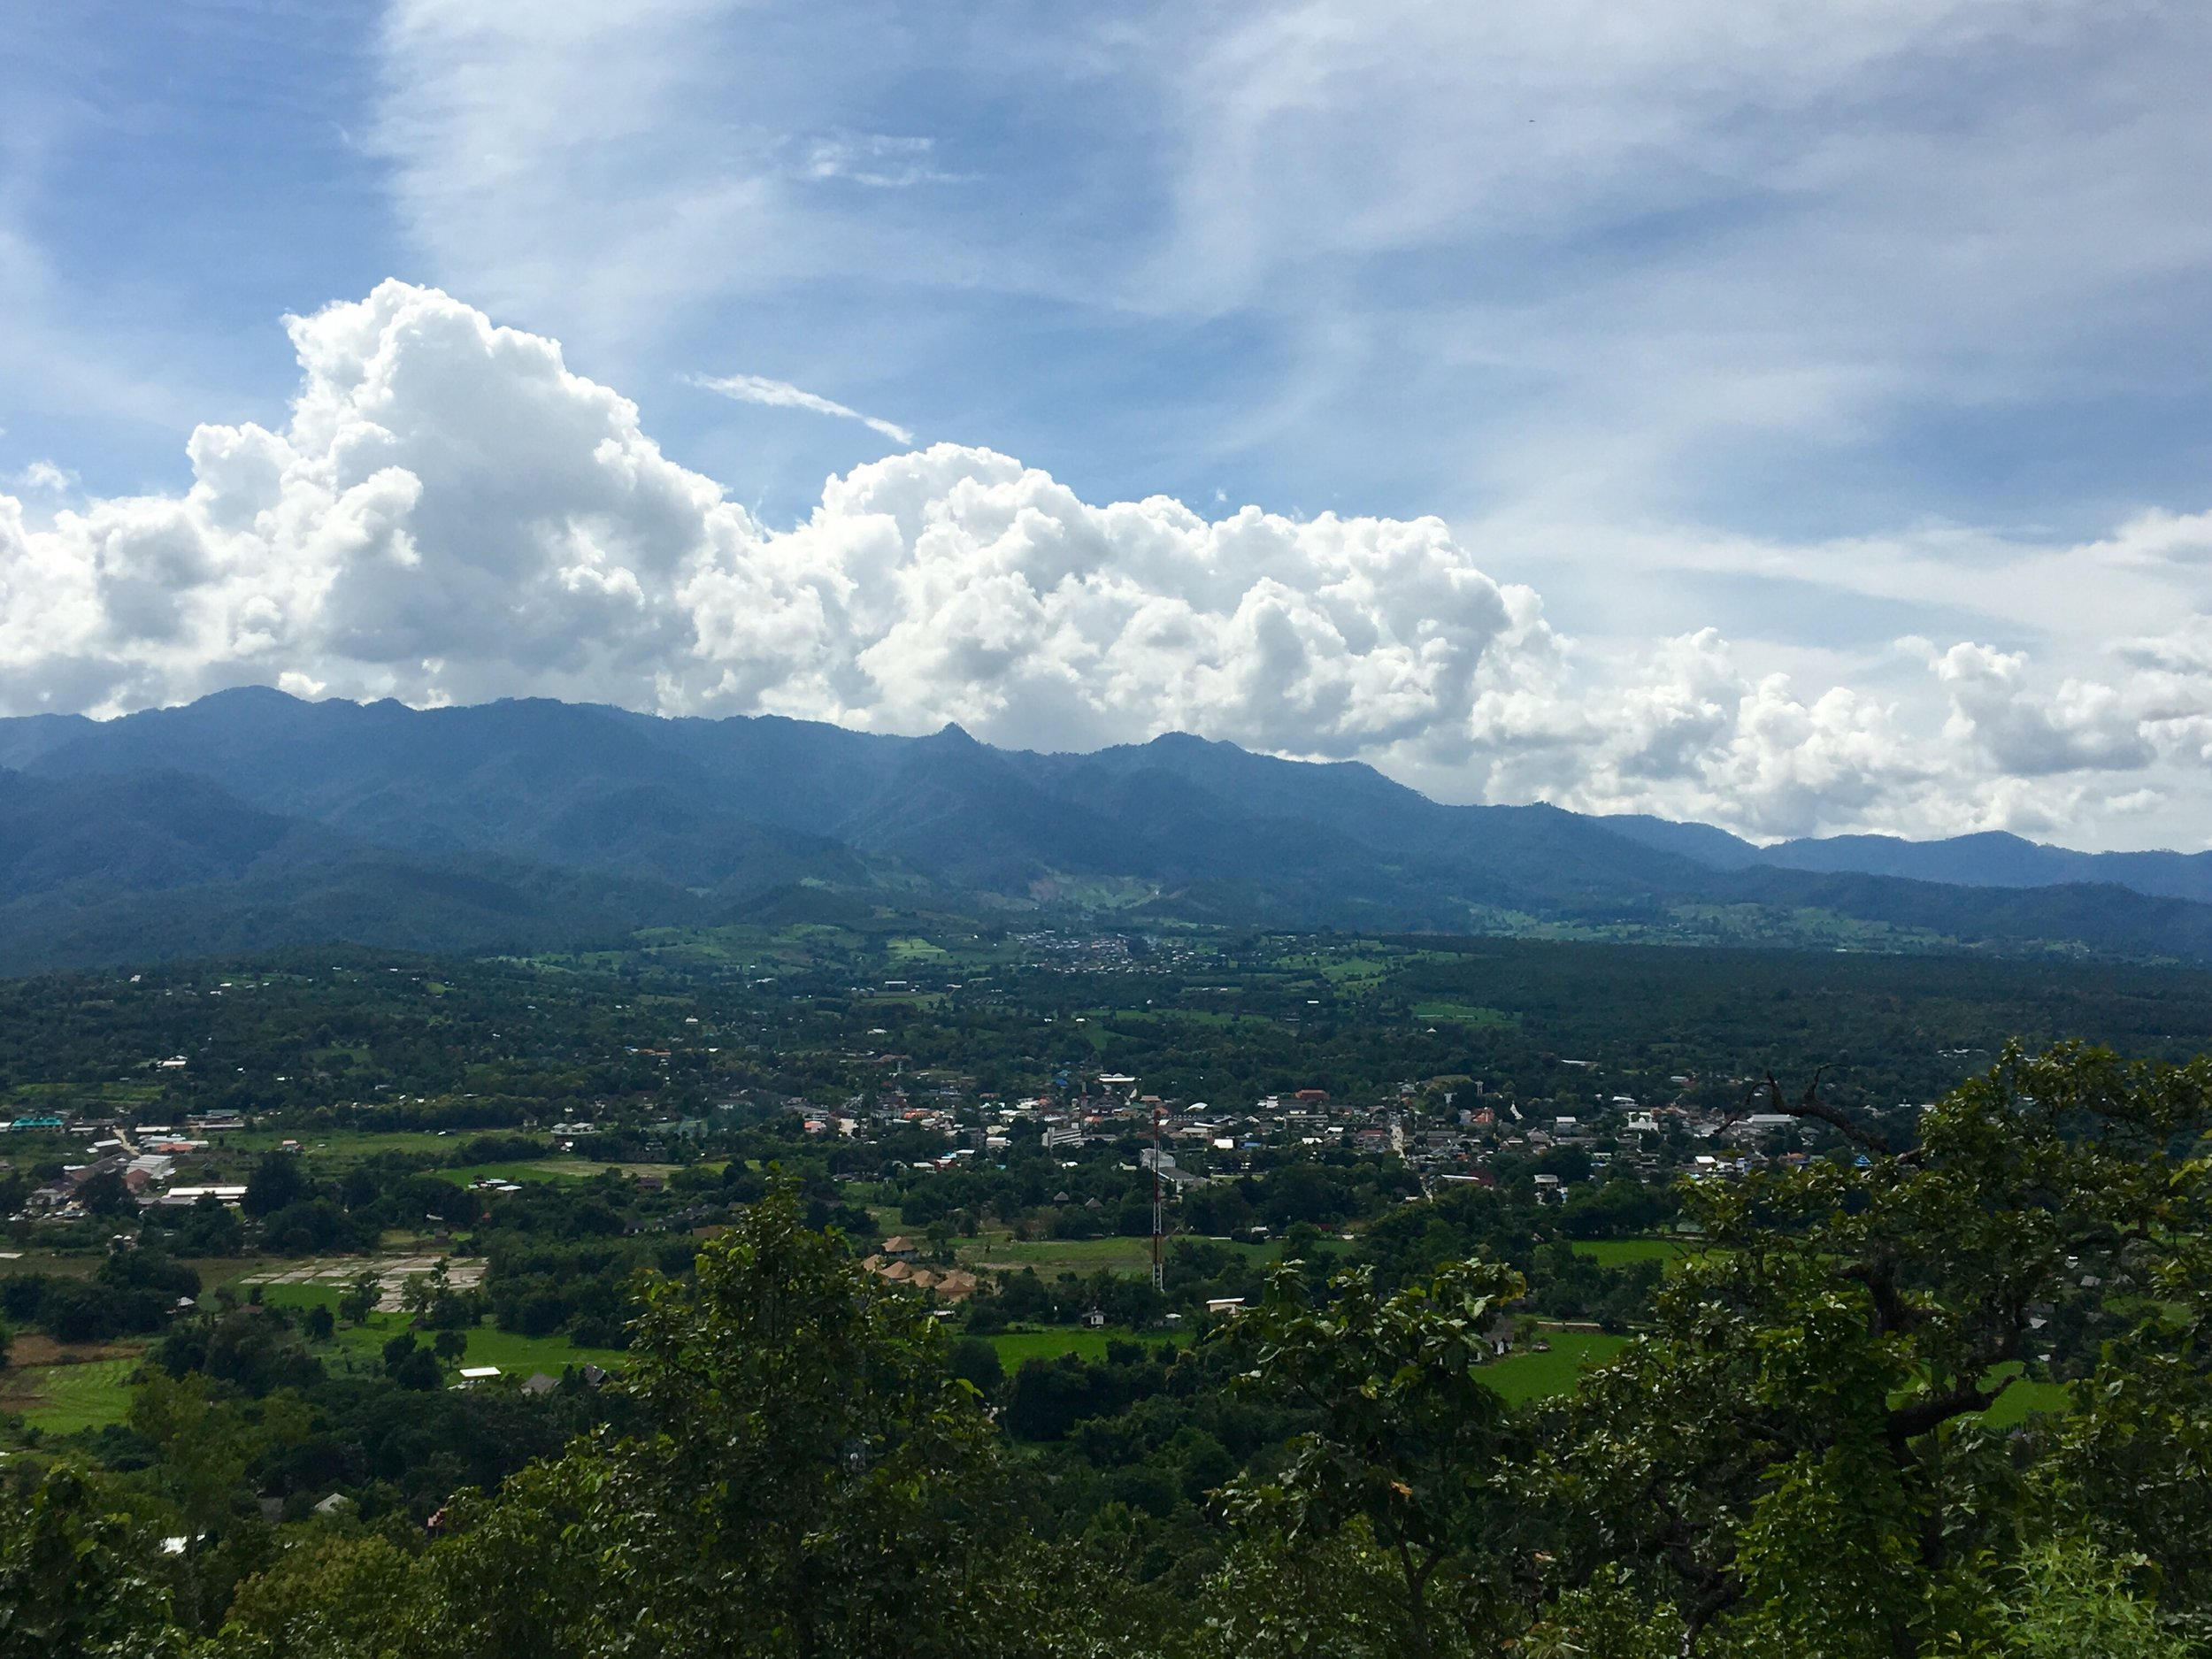 The town of Pai